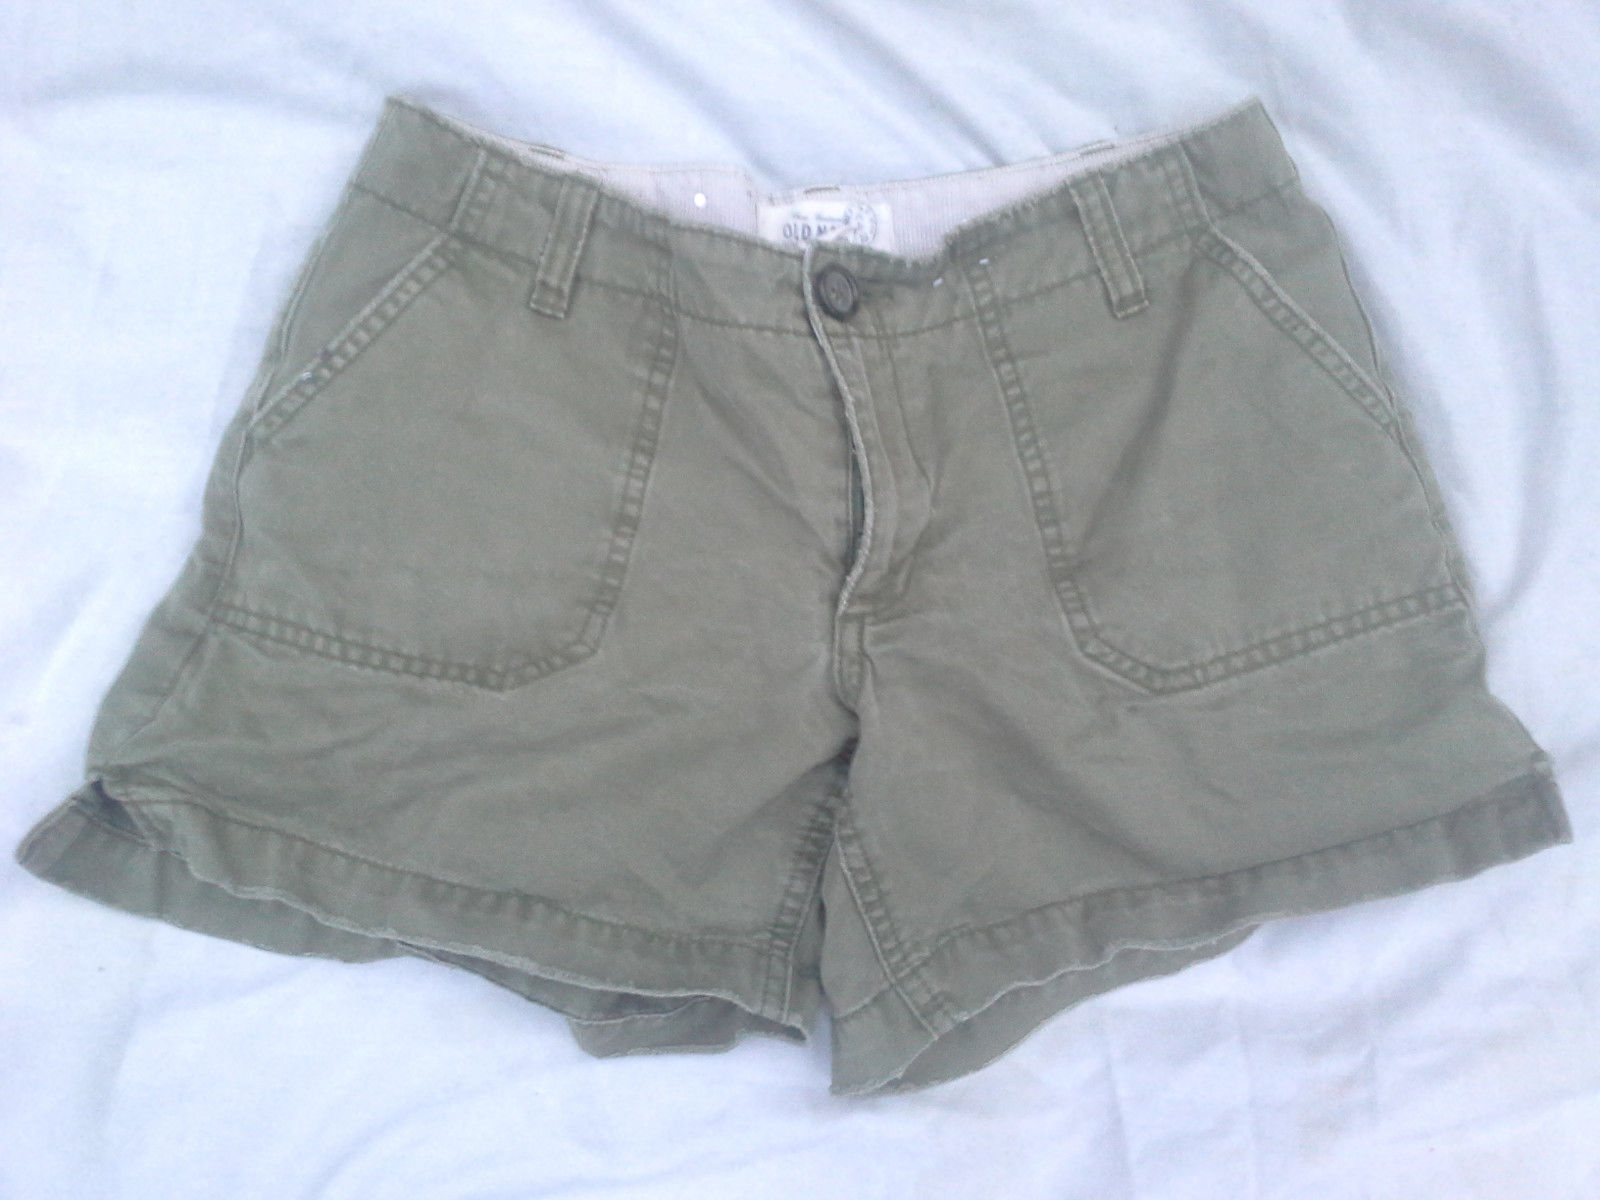 Primary image for Womens Old Navy Army Olive Green Distressed Cotton Shorts Low Rise Sz 1